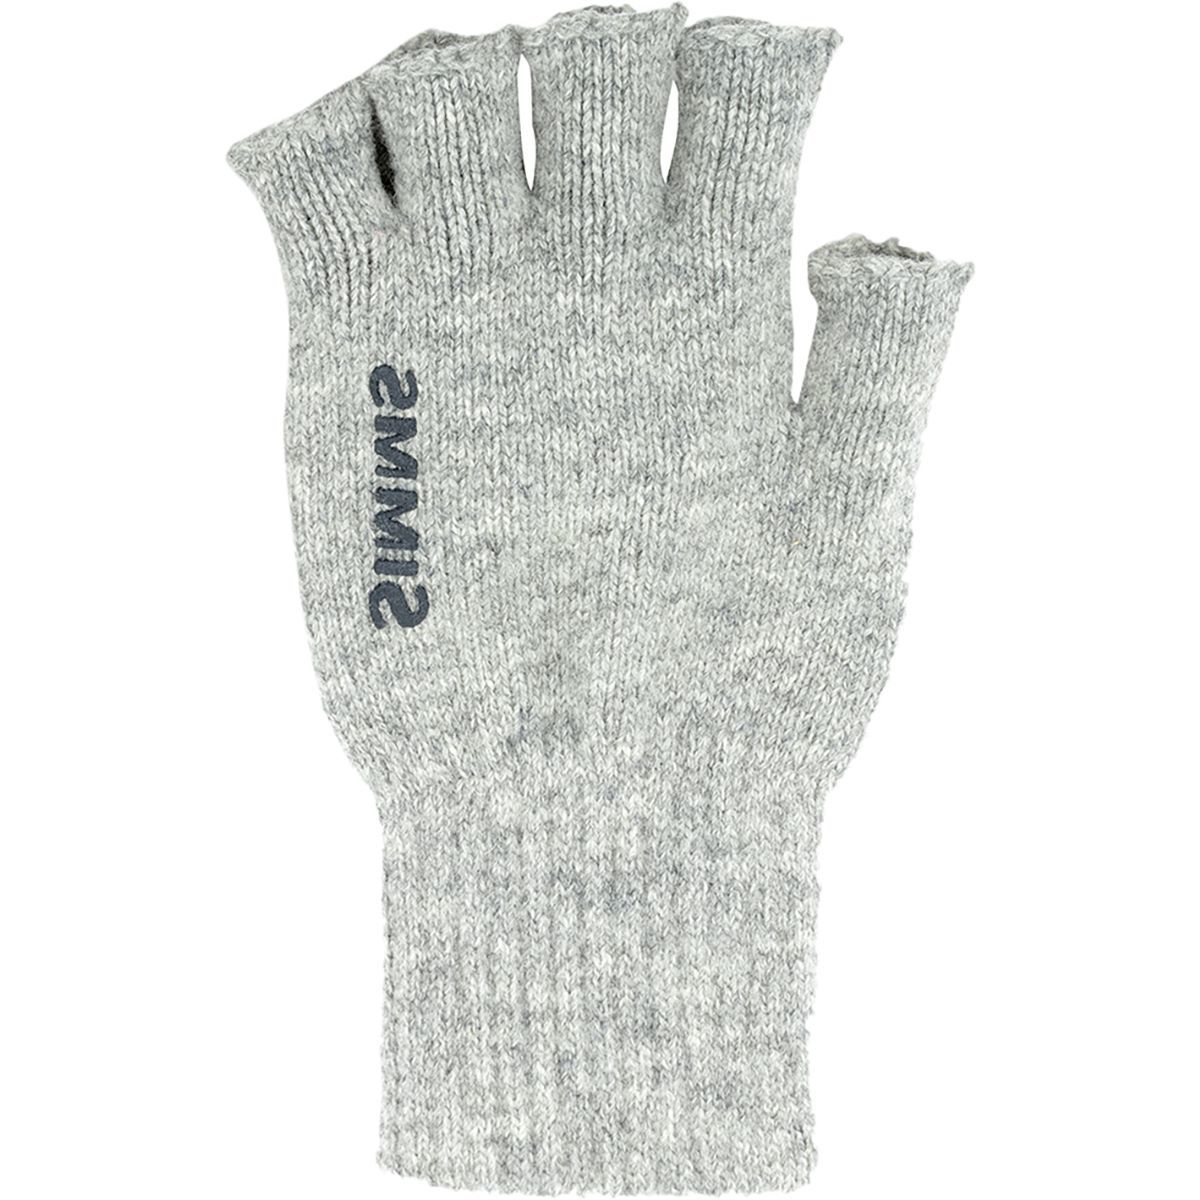 Simms Wool Half Finger Glove - Men's